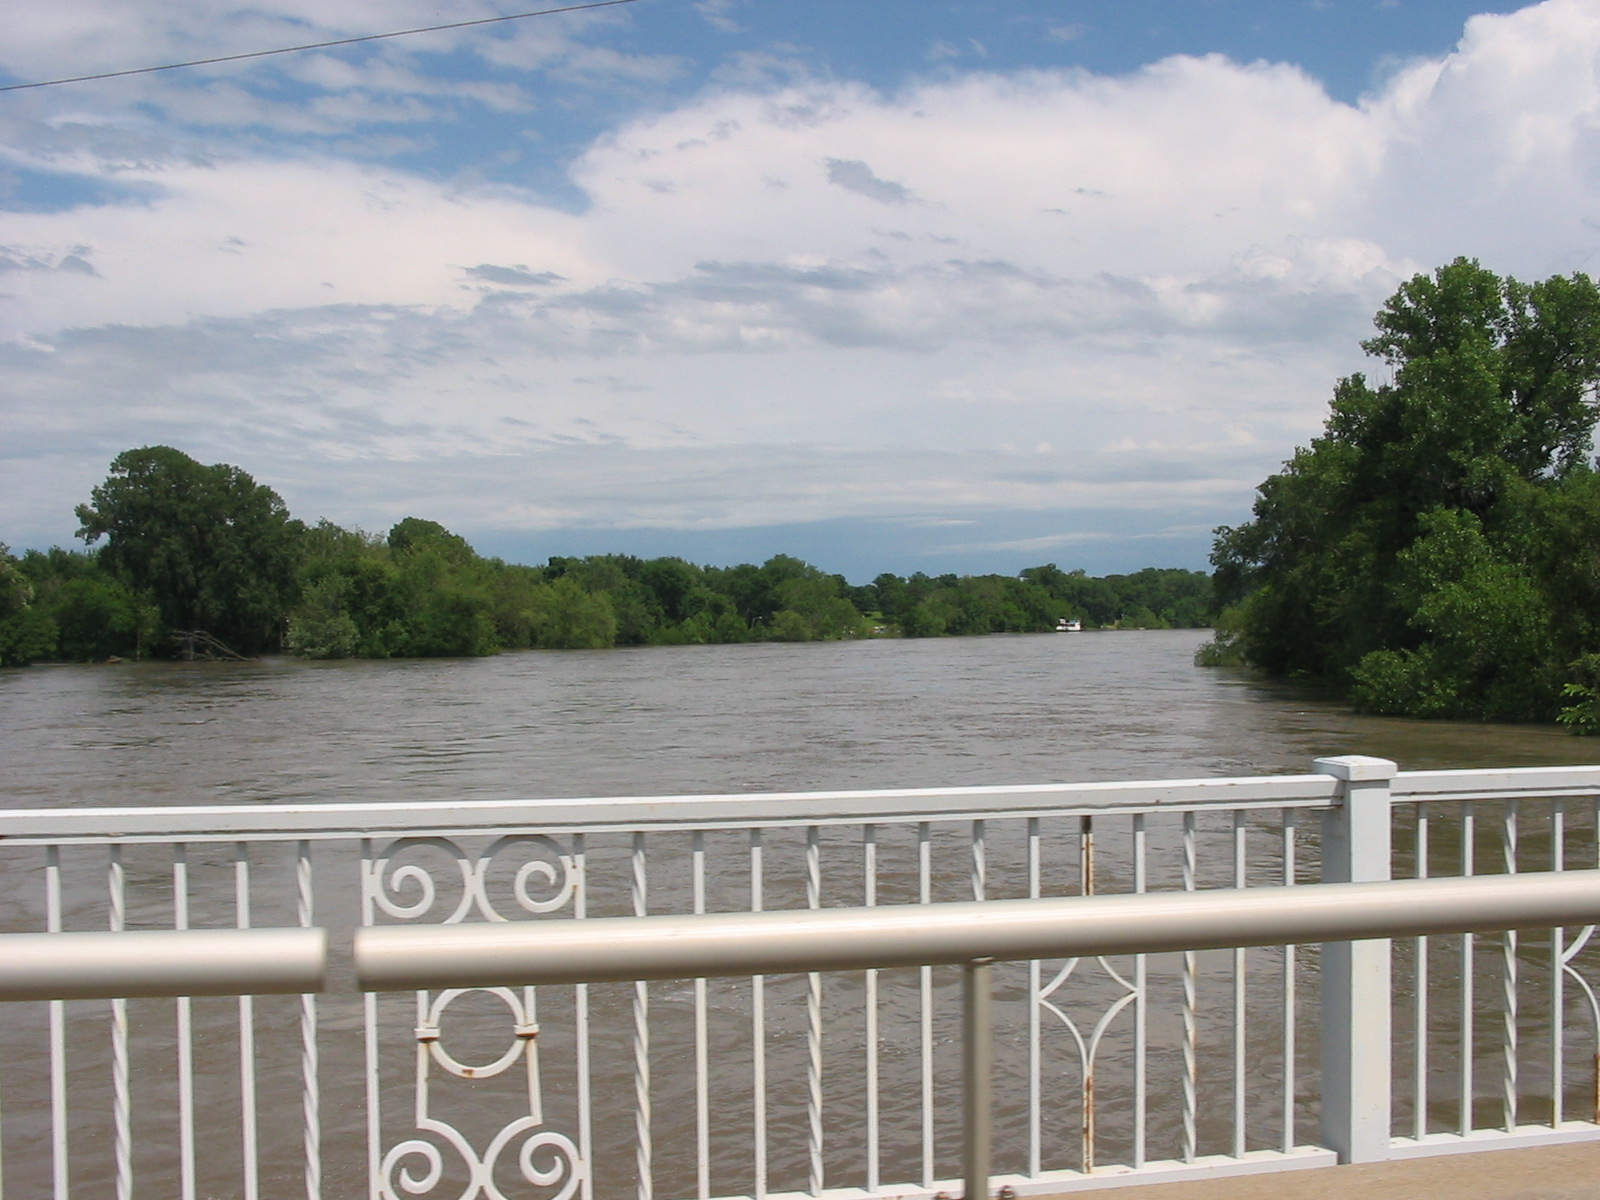 Des Moines River at 2nd Avenue looking downstream. Photo taken by Ken Podrazik/Karl Jungbluth on June 12, 2008. The crest at this location was 31.57 feet and occurred on Friday June 13, 2008. The record crest was 31.71 feet on July 11, 1993.